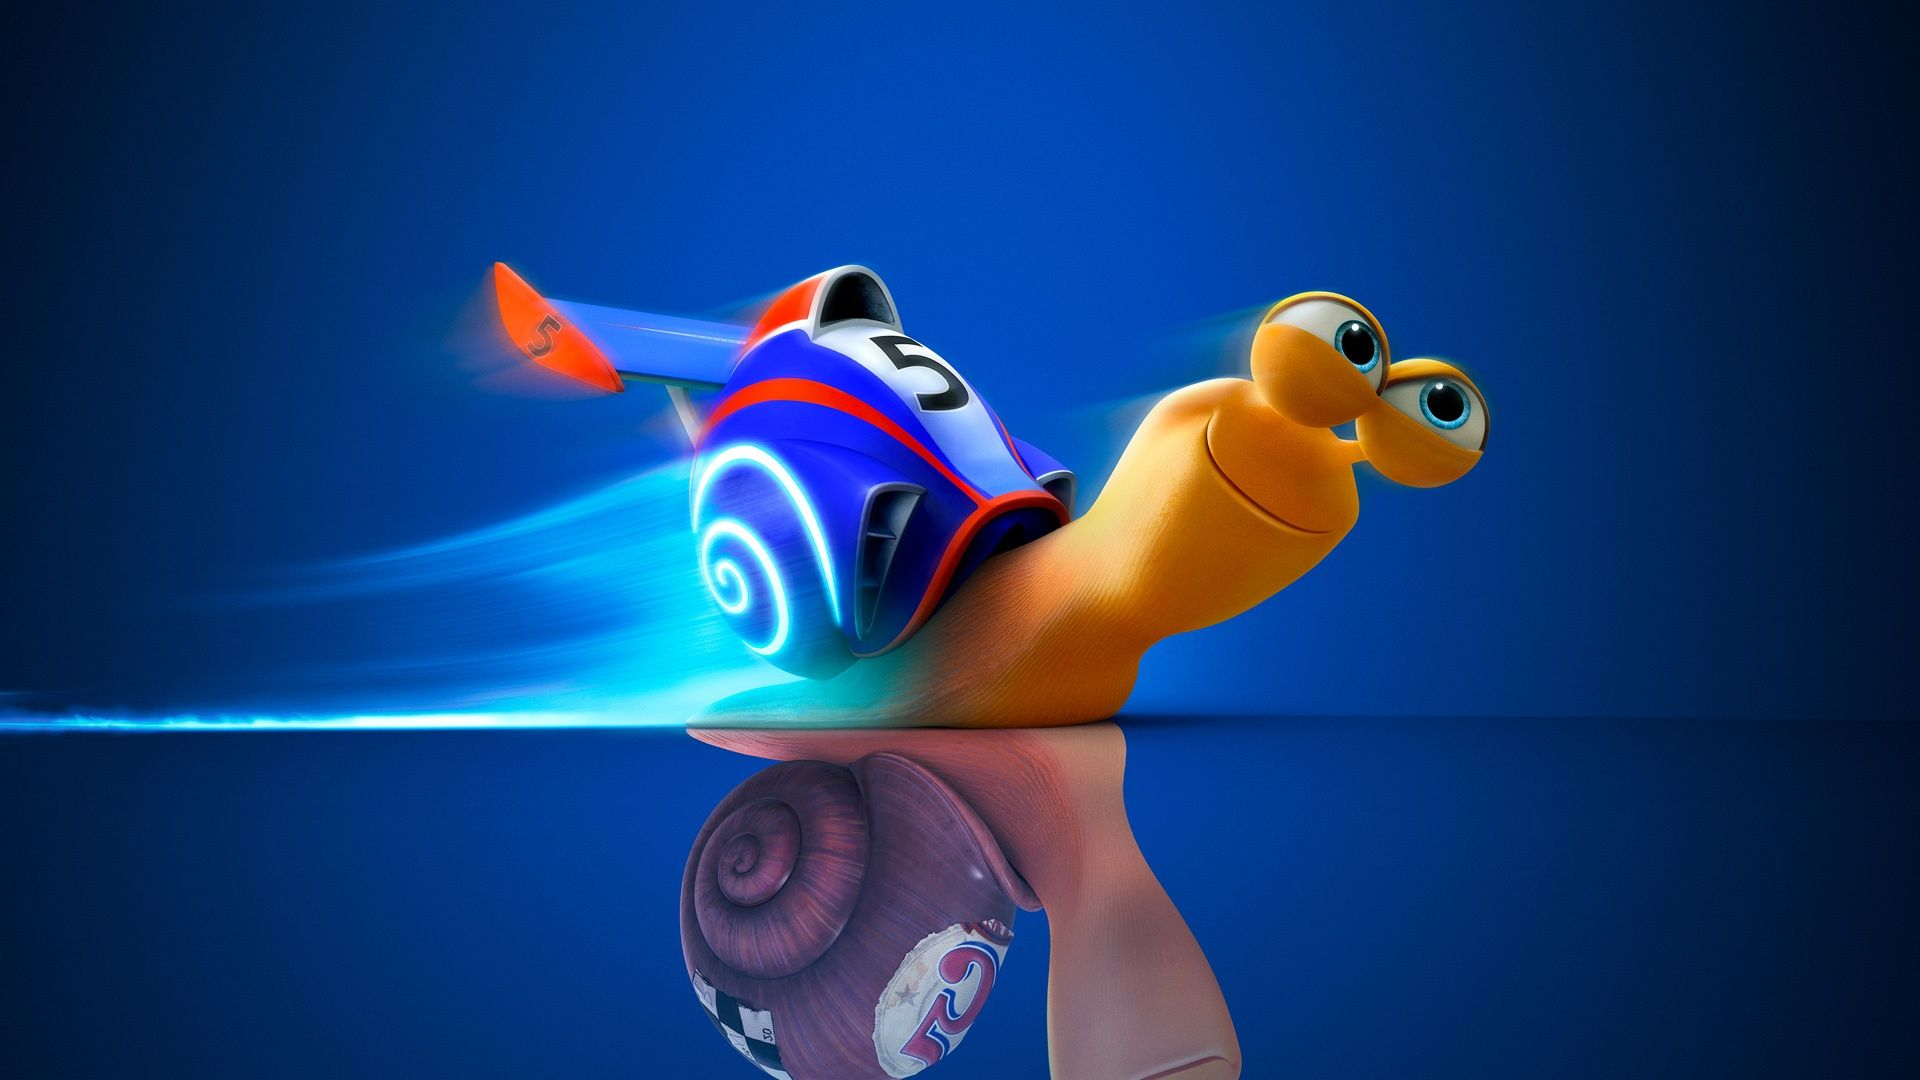 top hd wallpaper movie turbo 2013 for desktop free download | movies